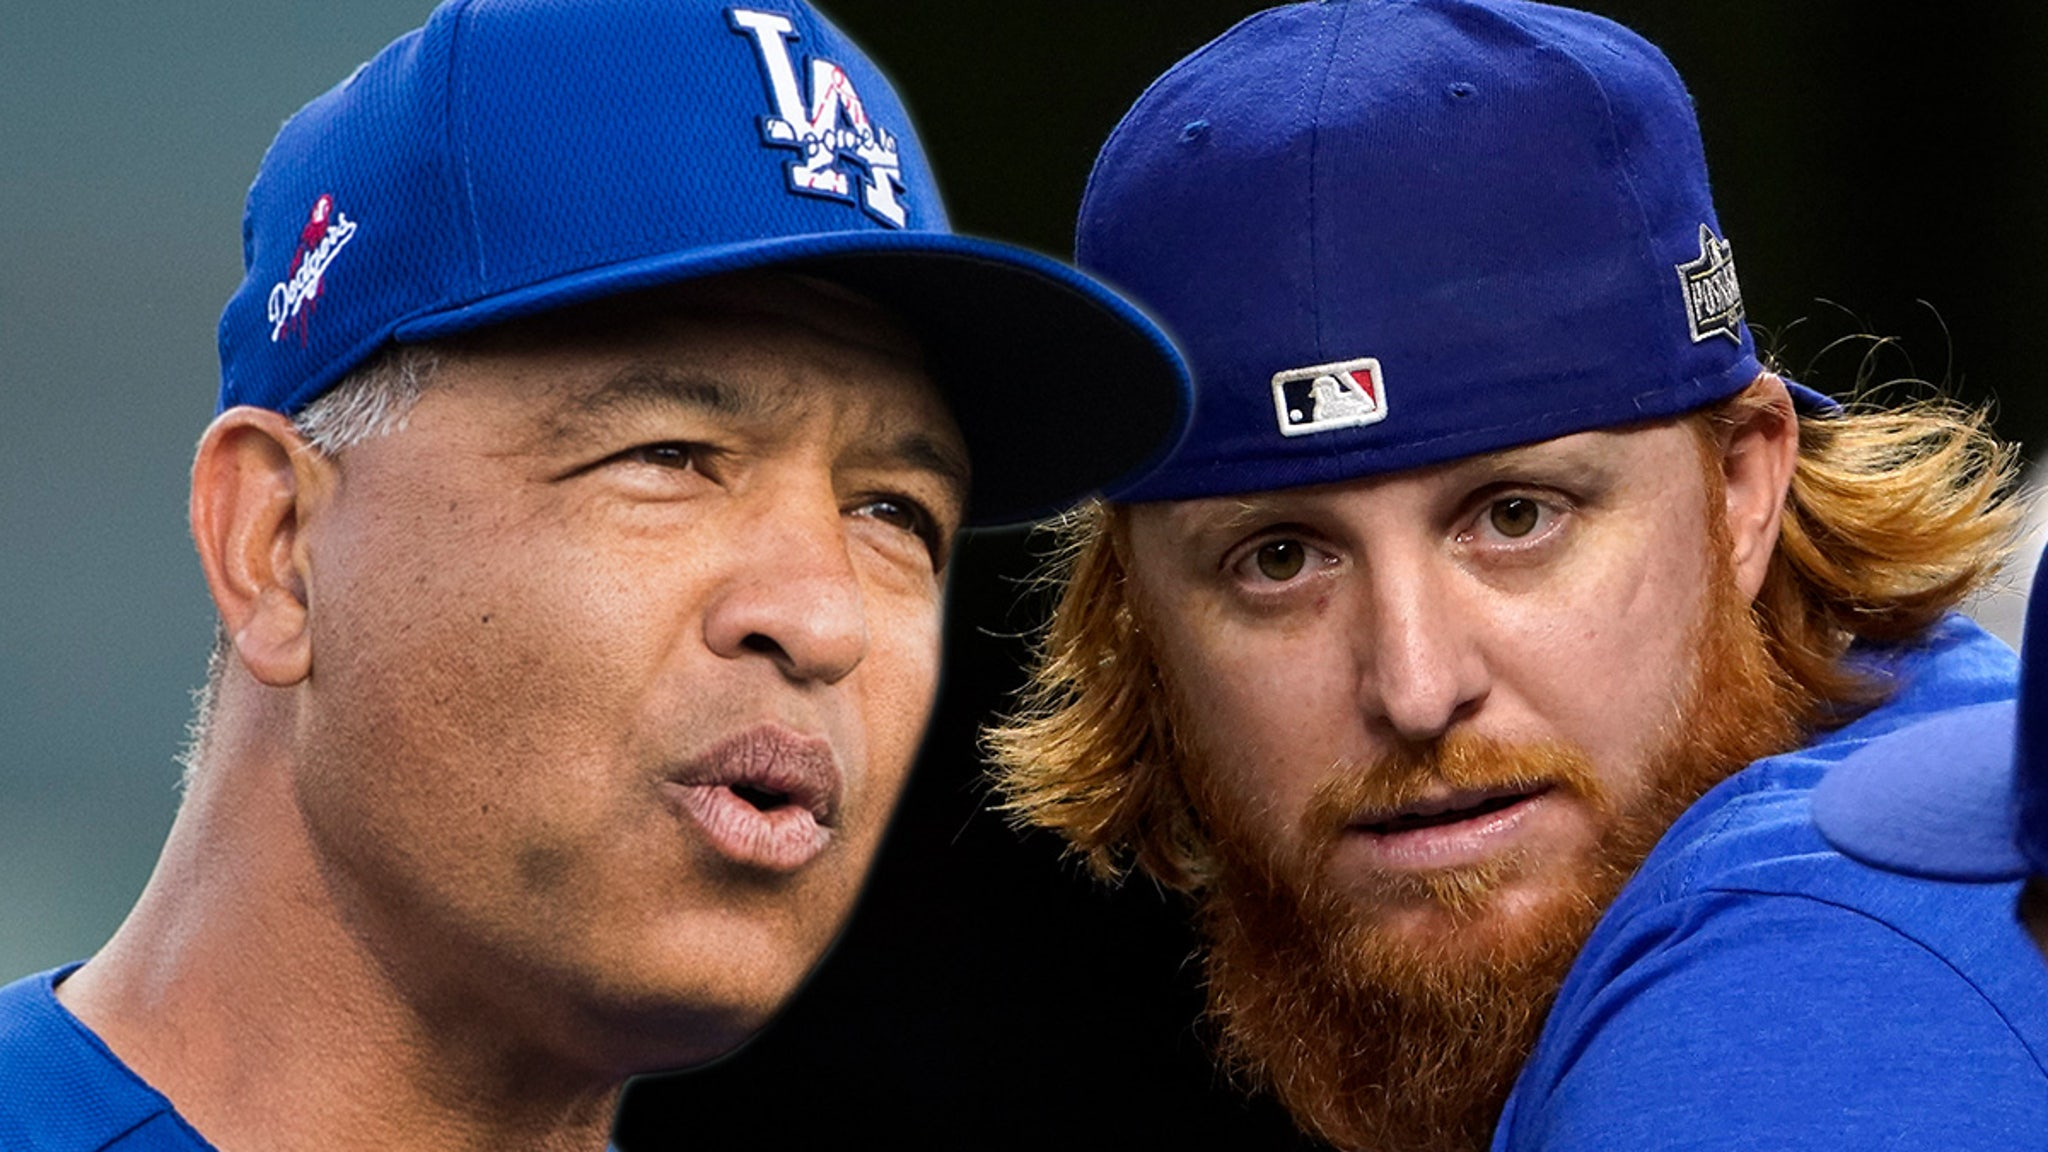 Dave Roberts Breaks Silence On Turner's W.S. COVID Drama ... 'Could've Done Better'